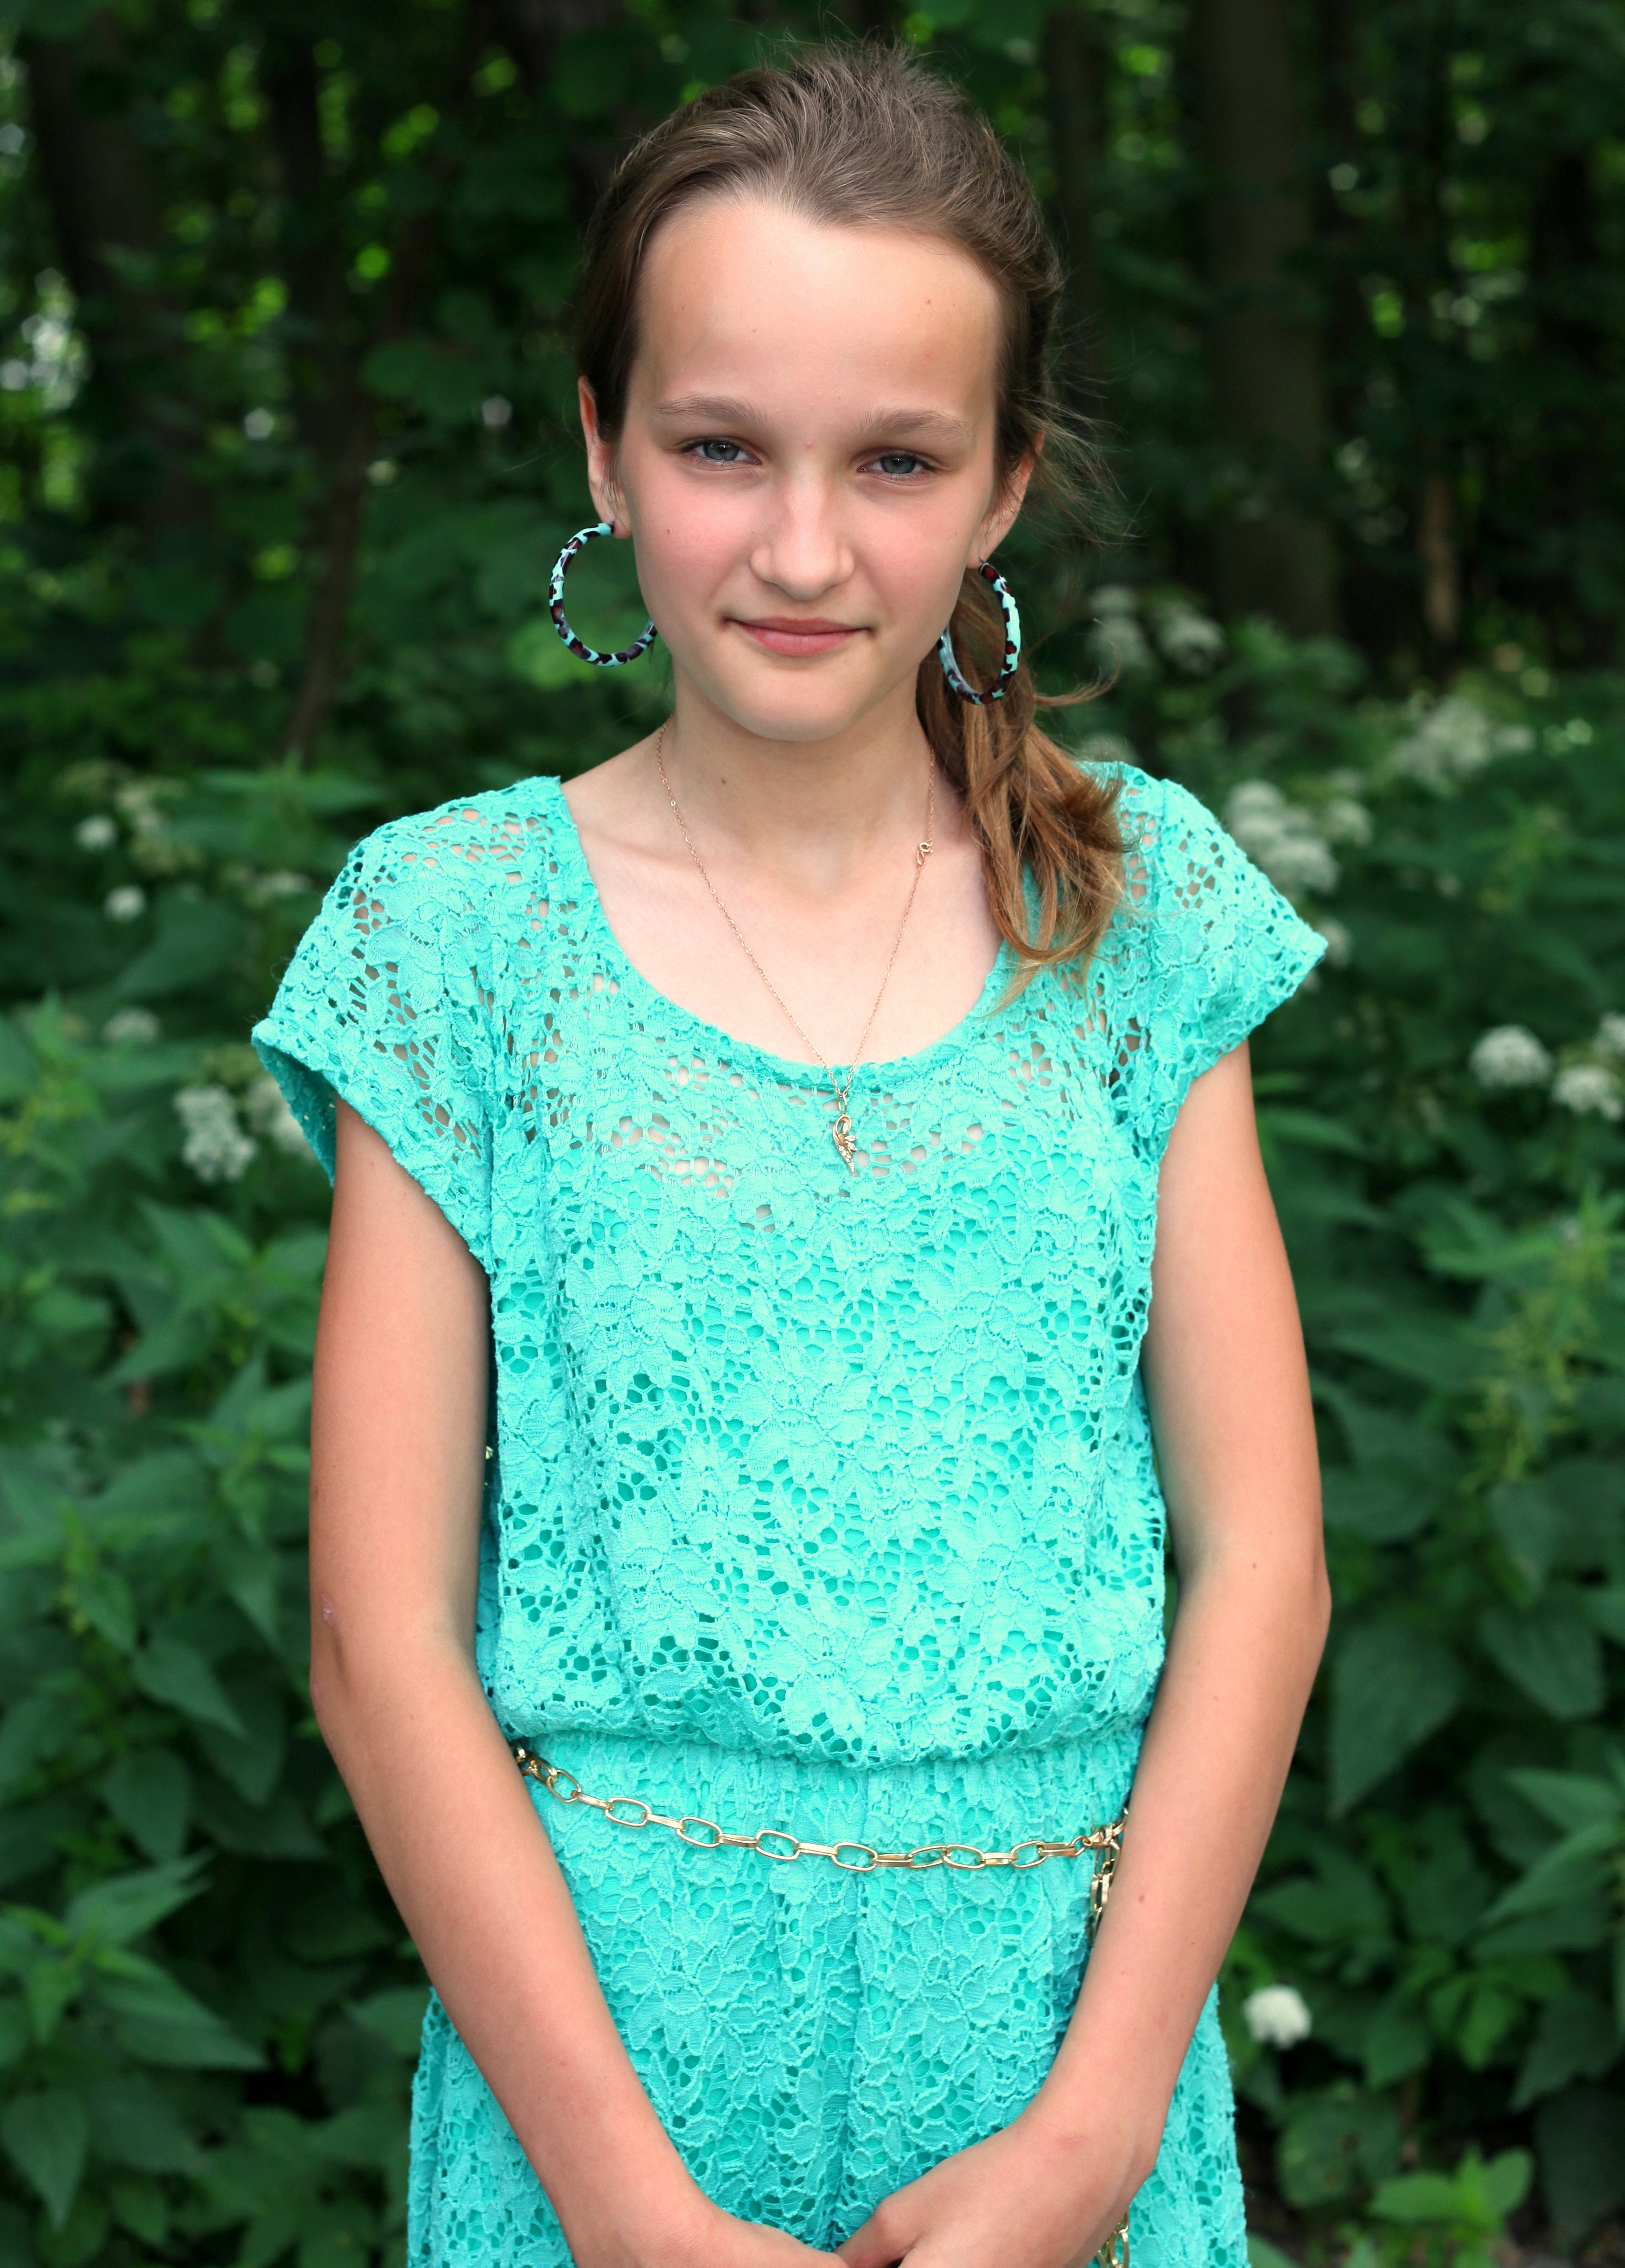 an absolutely beautiful girl with huge earrings, photographed in June 2013, portrait 2/27